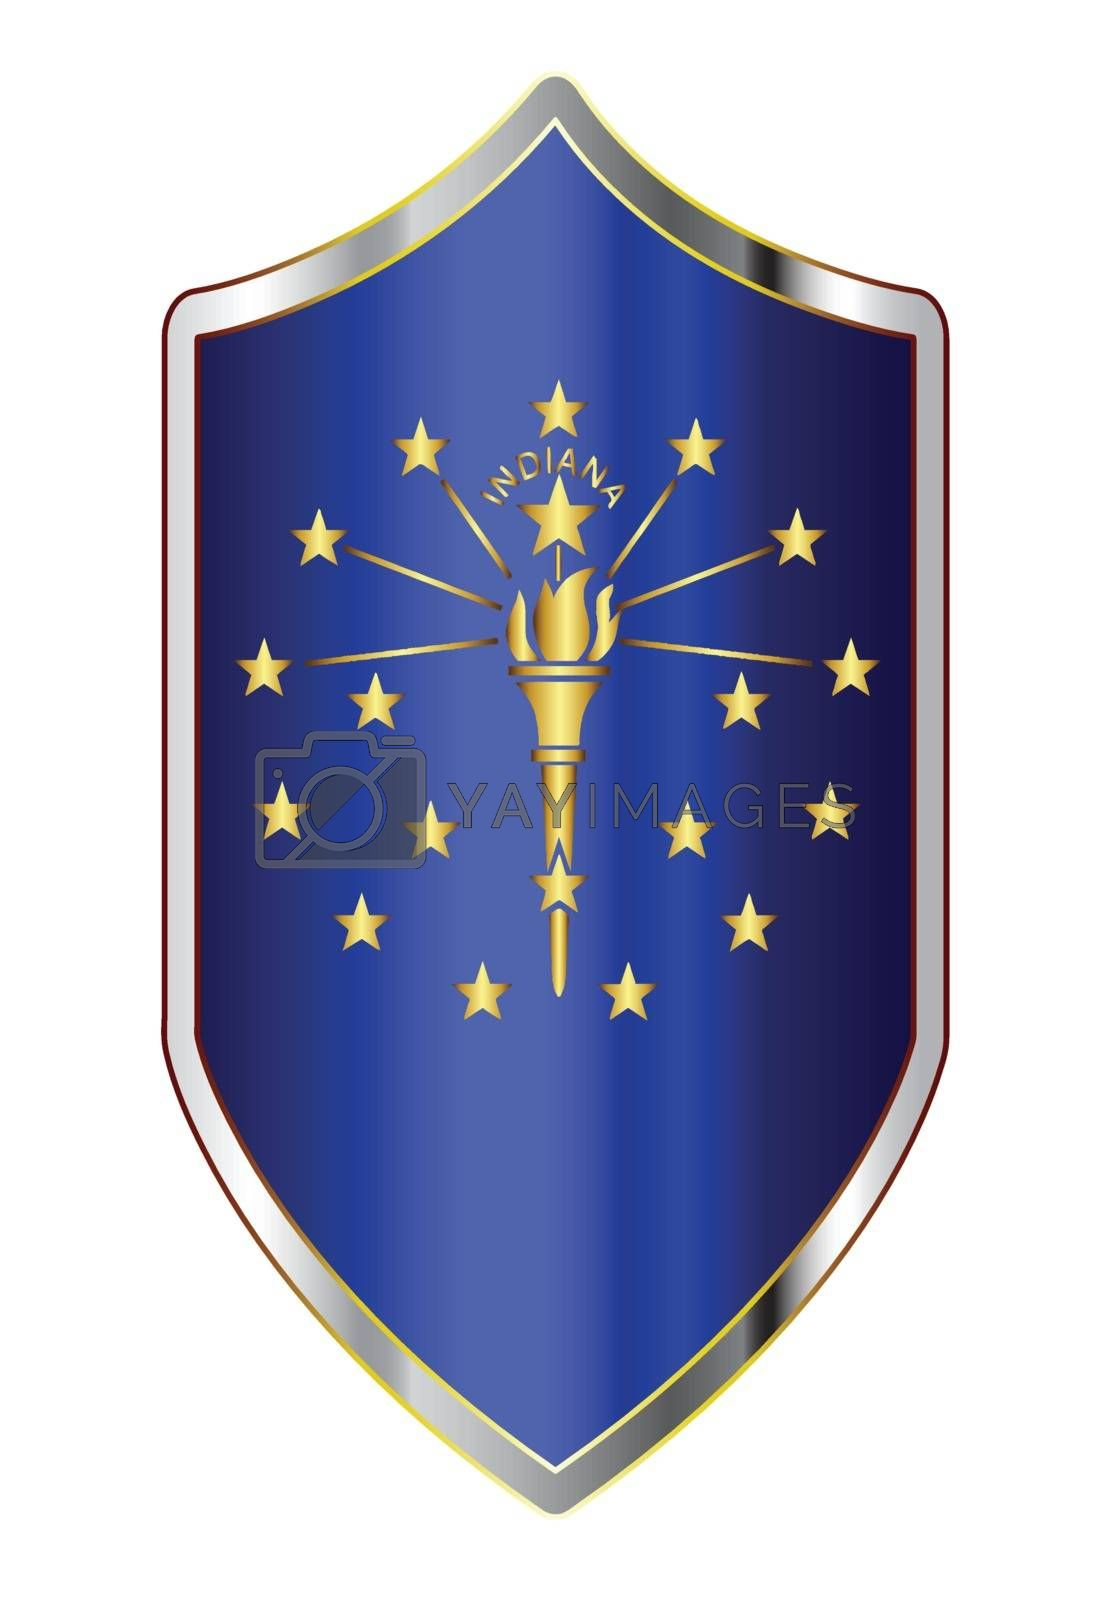 A typical crusader type shield with the state flag of Indiana all isolated on a white background